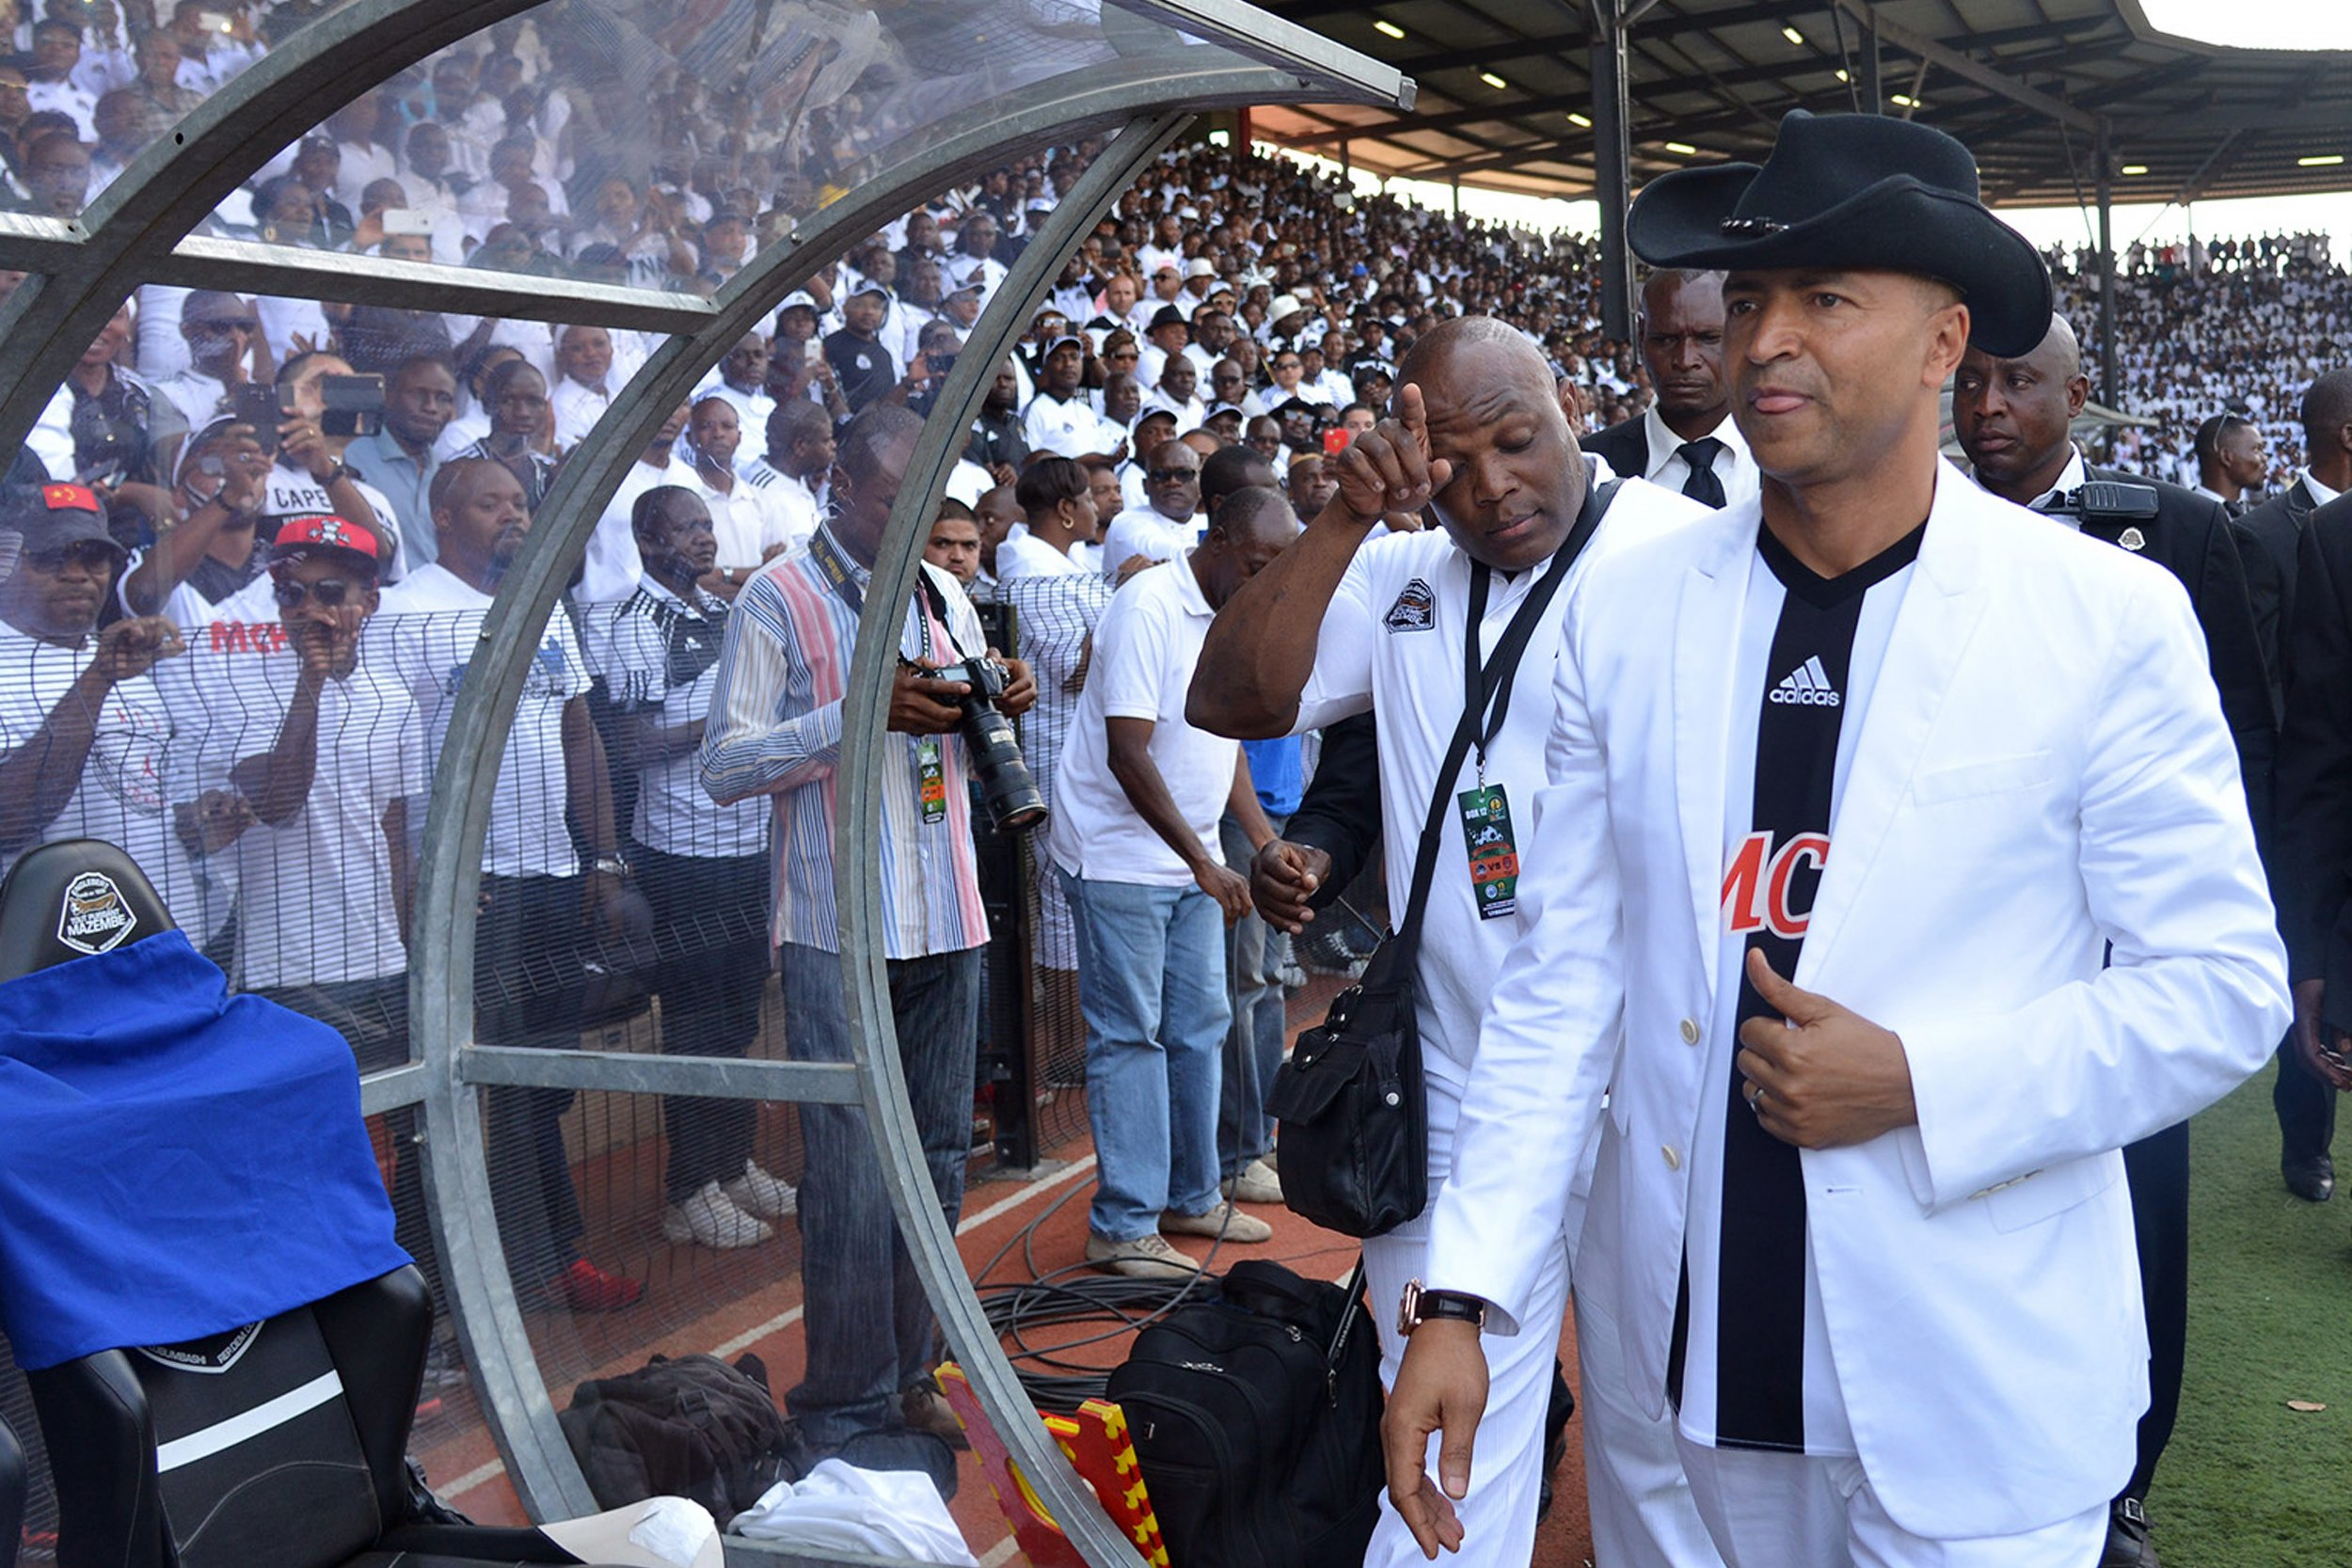 Moise Katumbi at a TP Mazembe match.